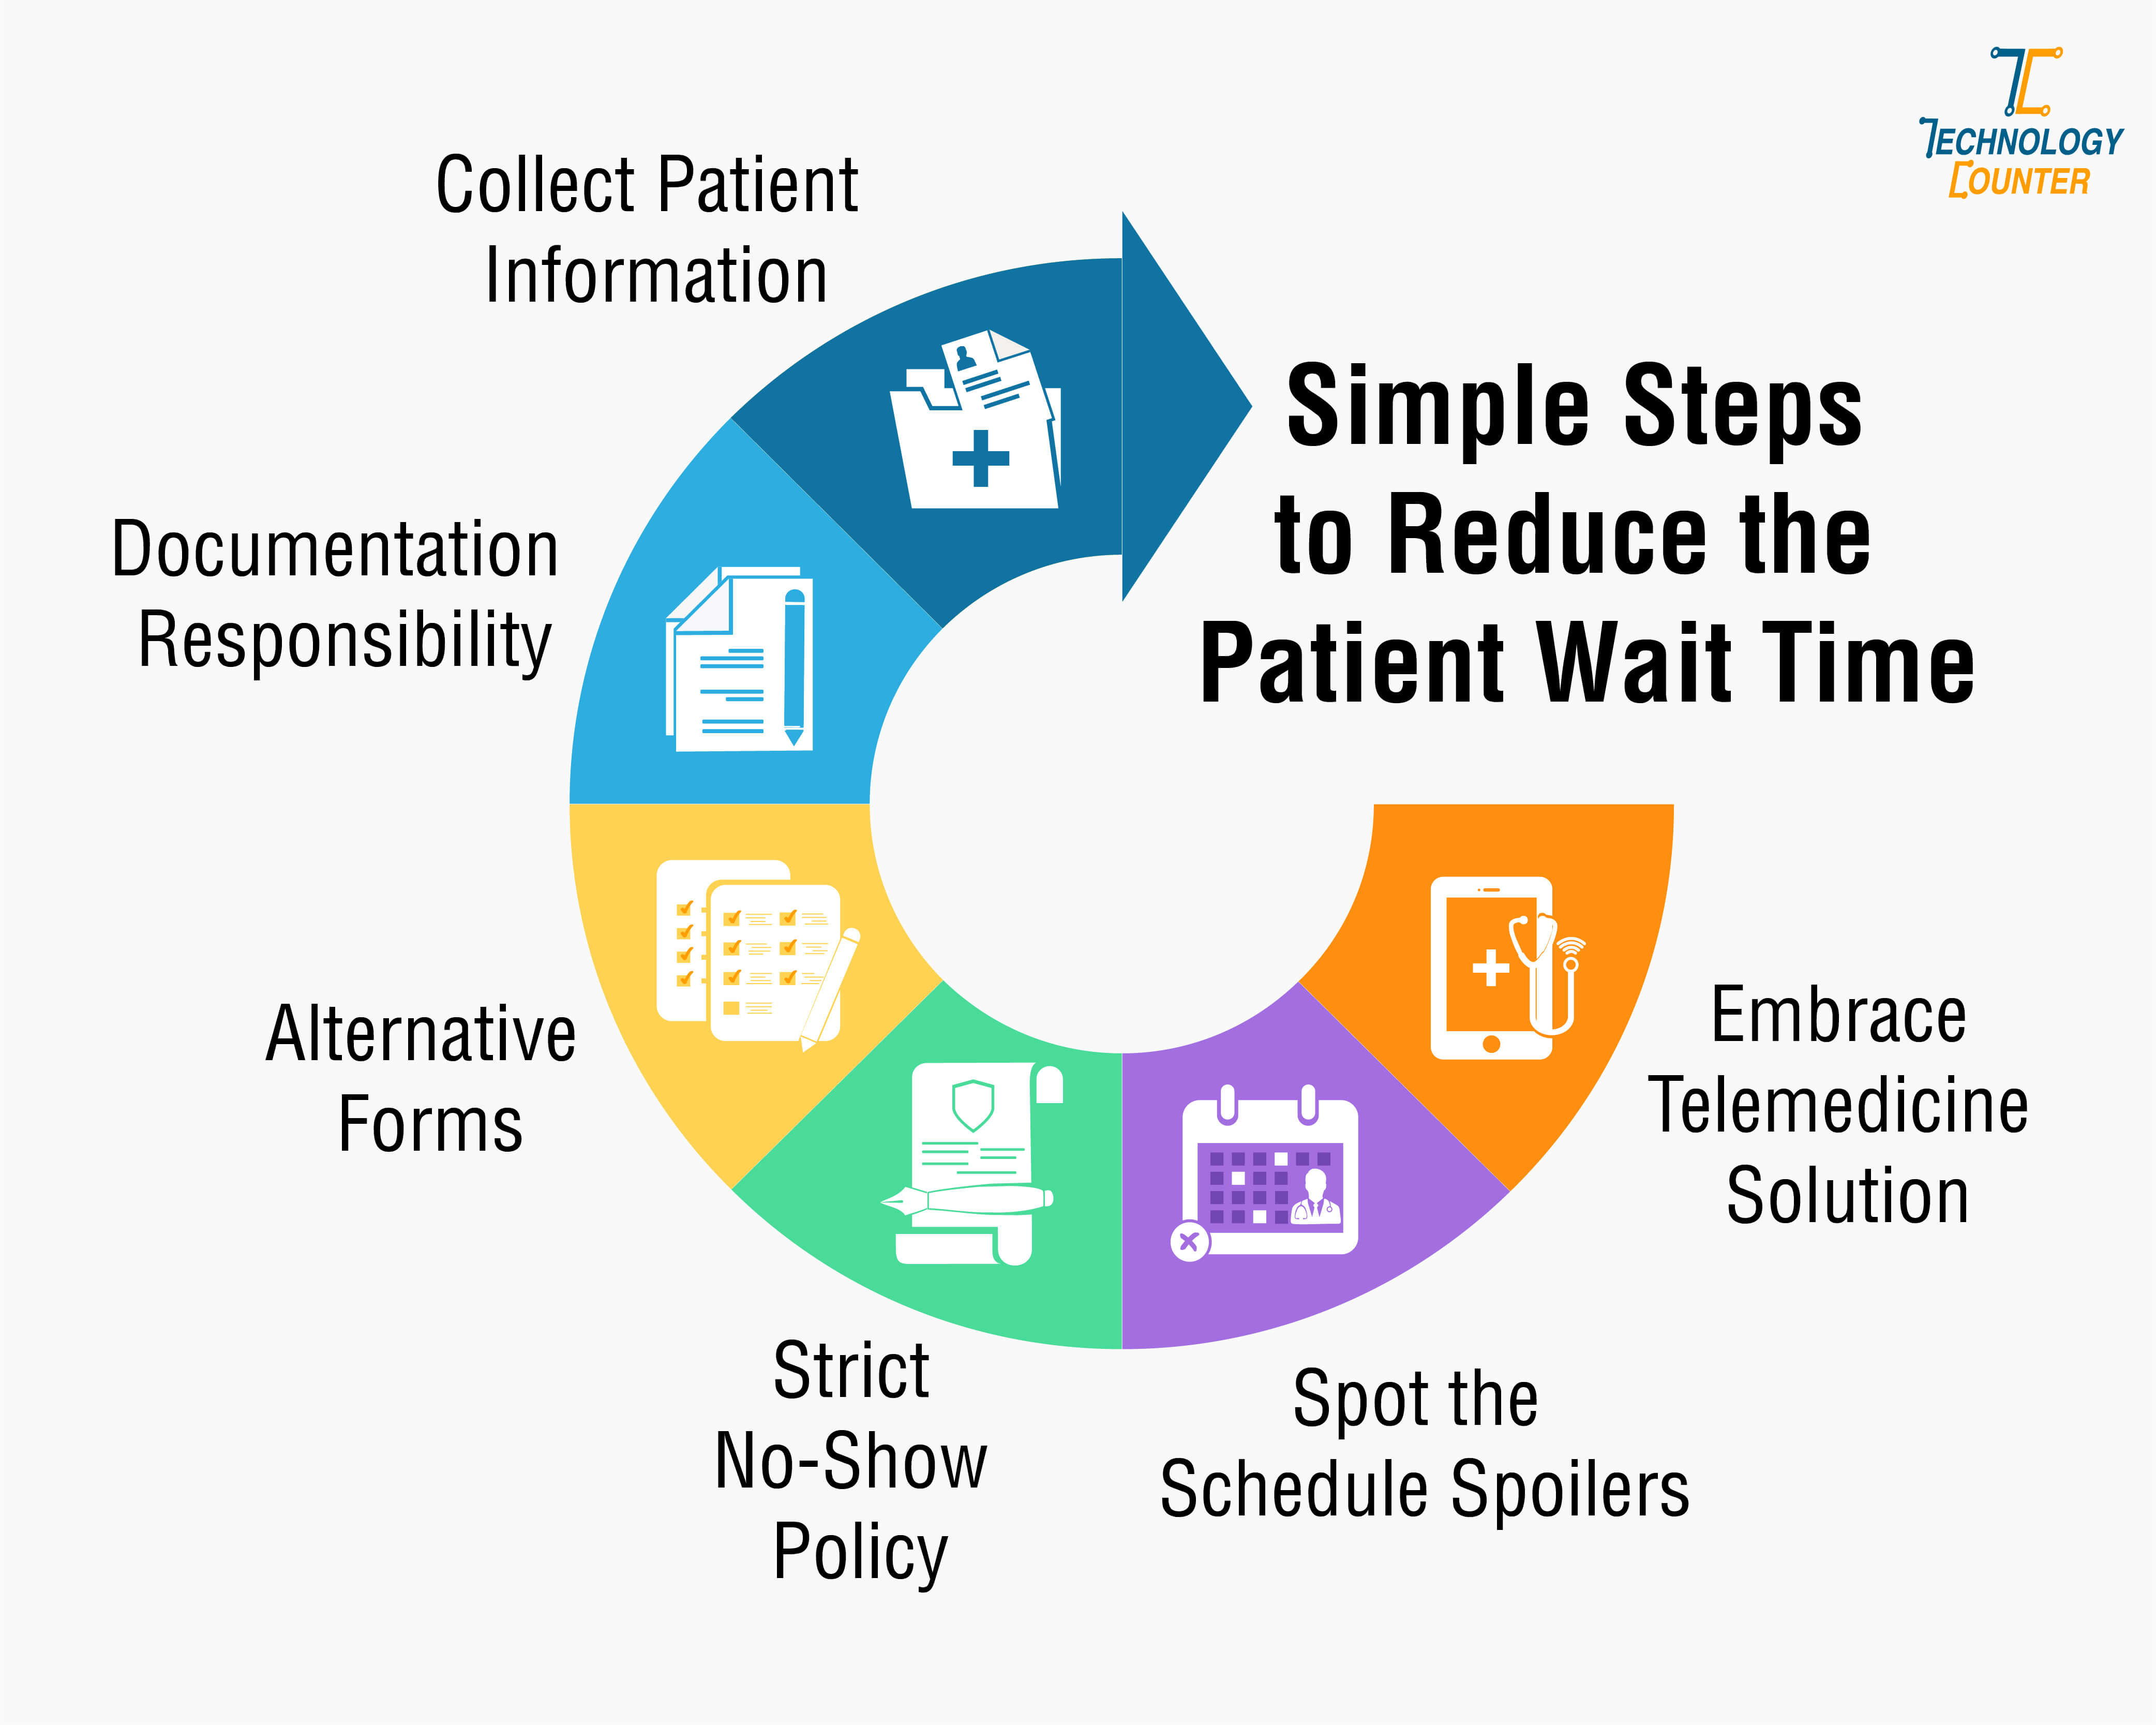 Simple Steps to Reduce the Patient Wait Time